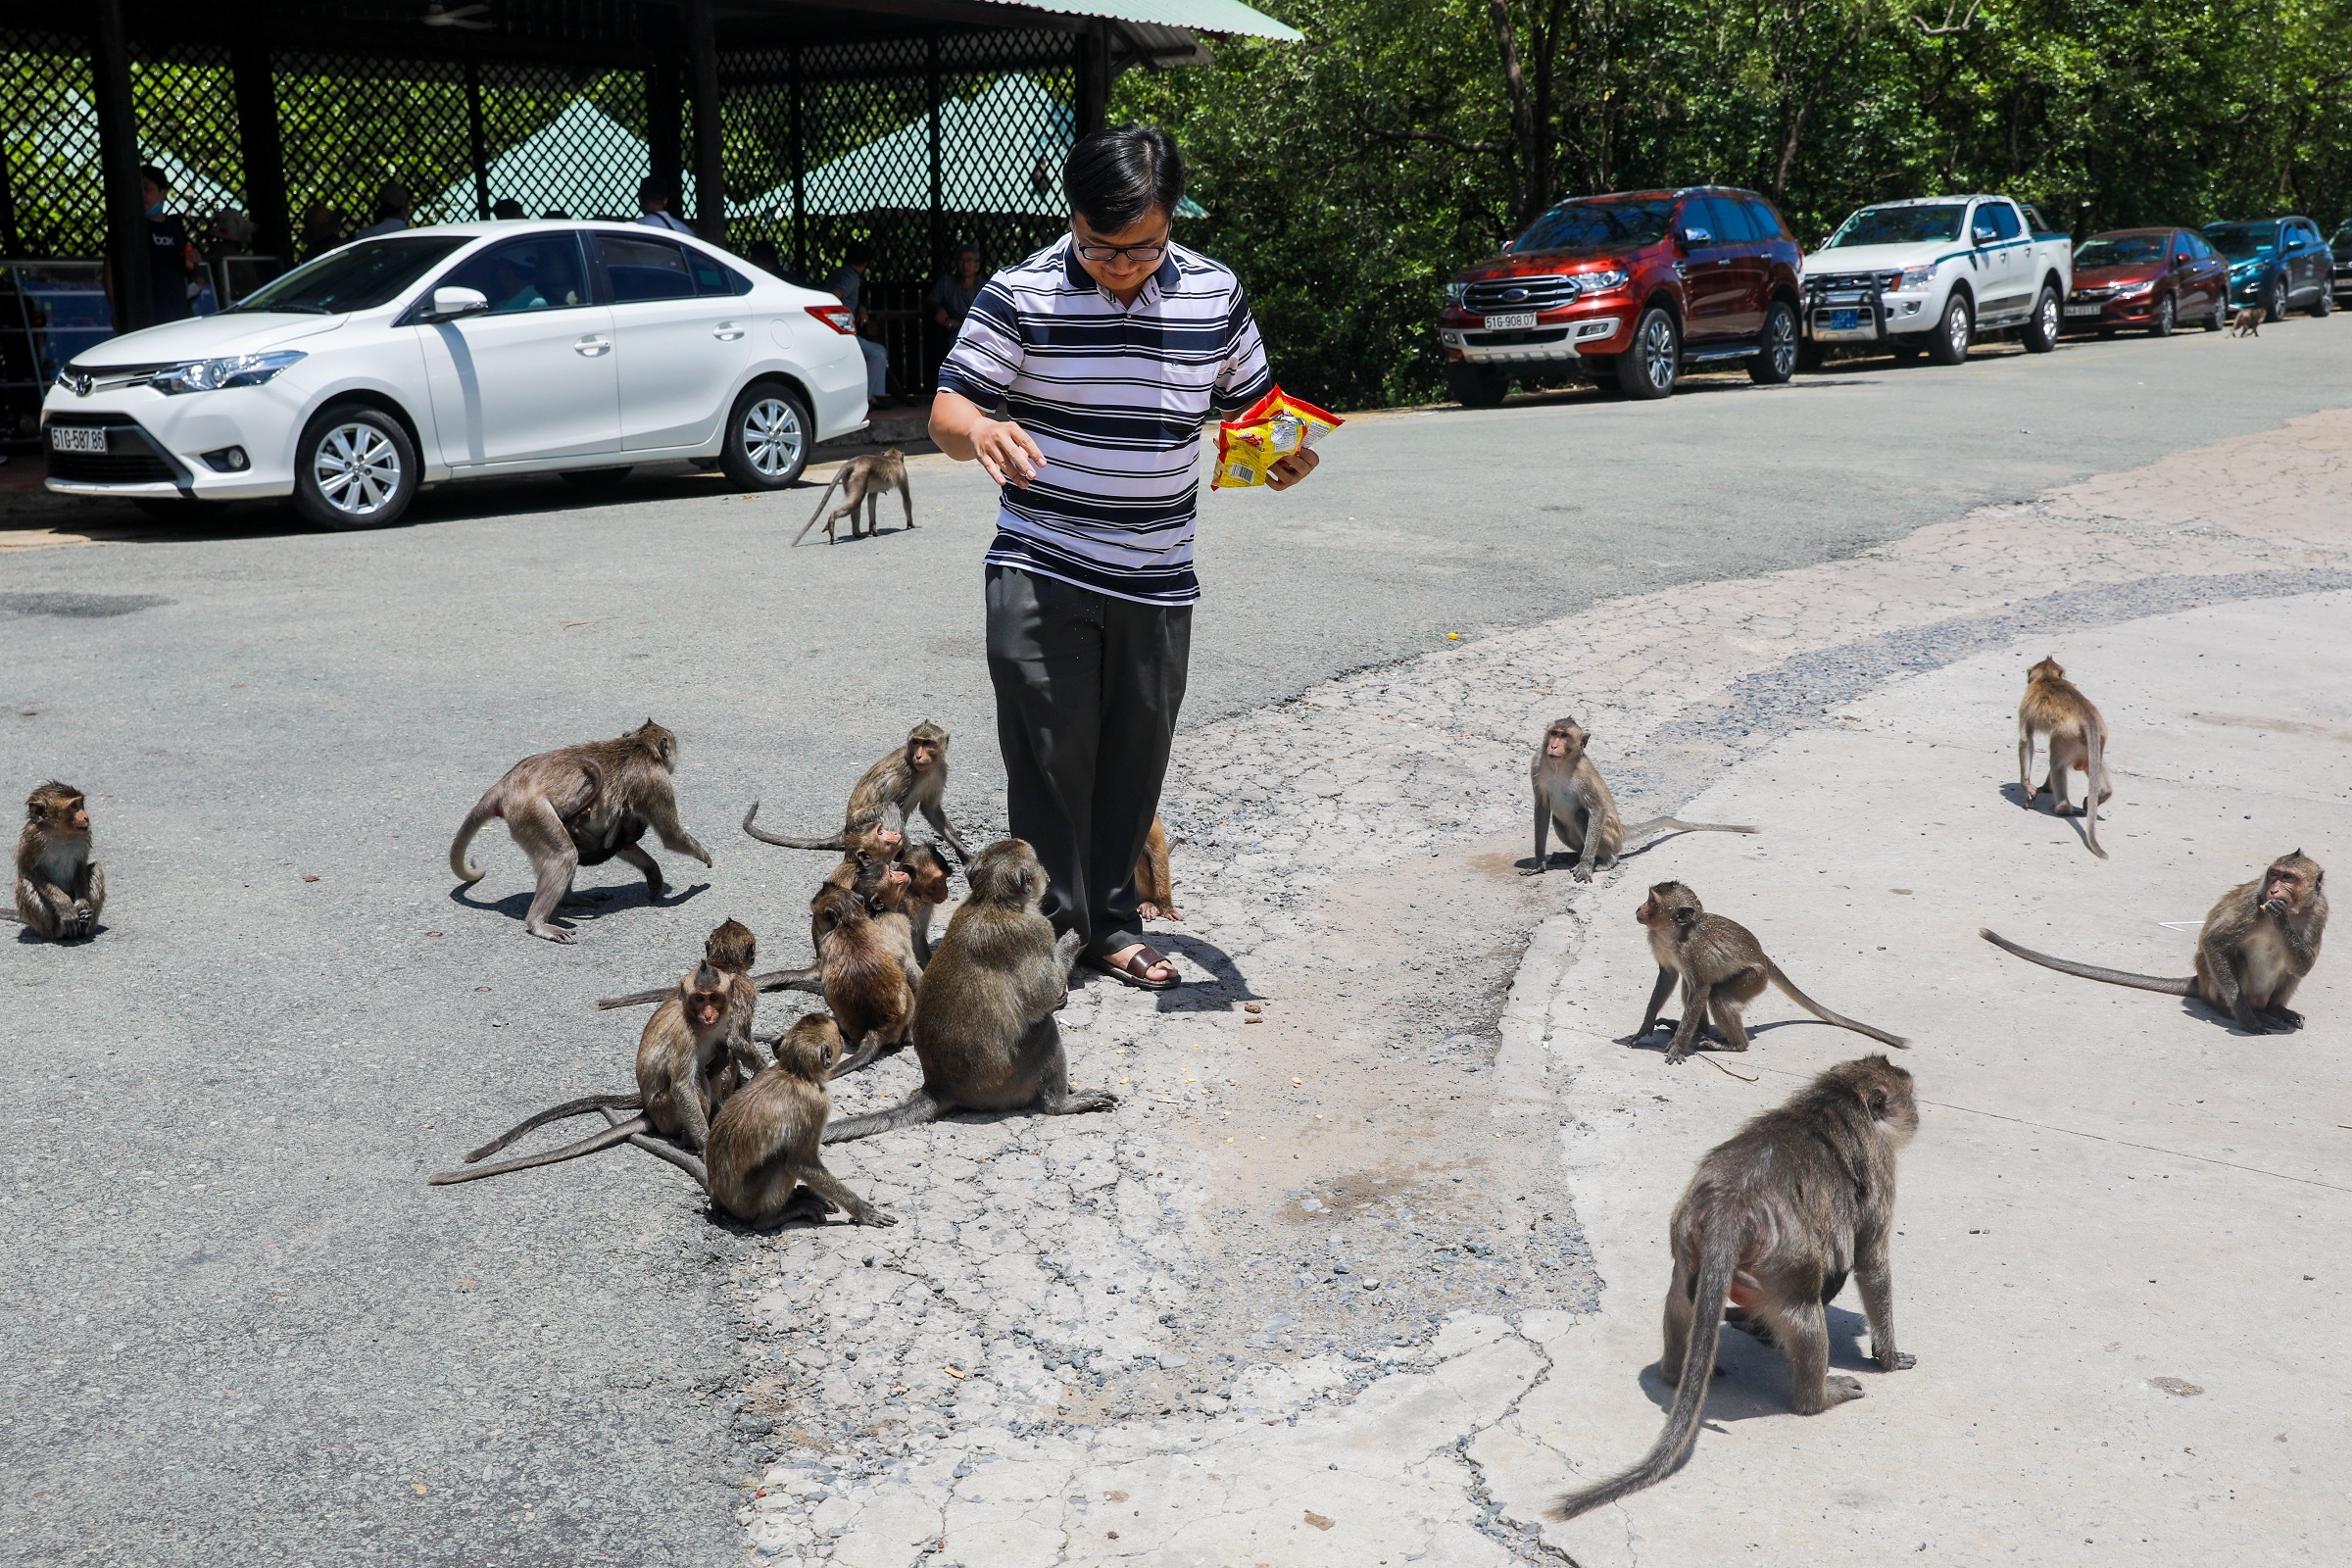 Saigon monkey colony provides feral delight